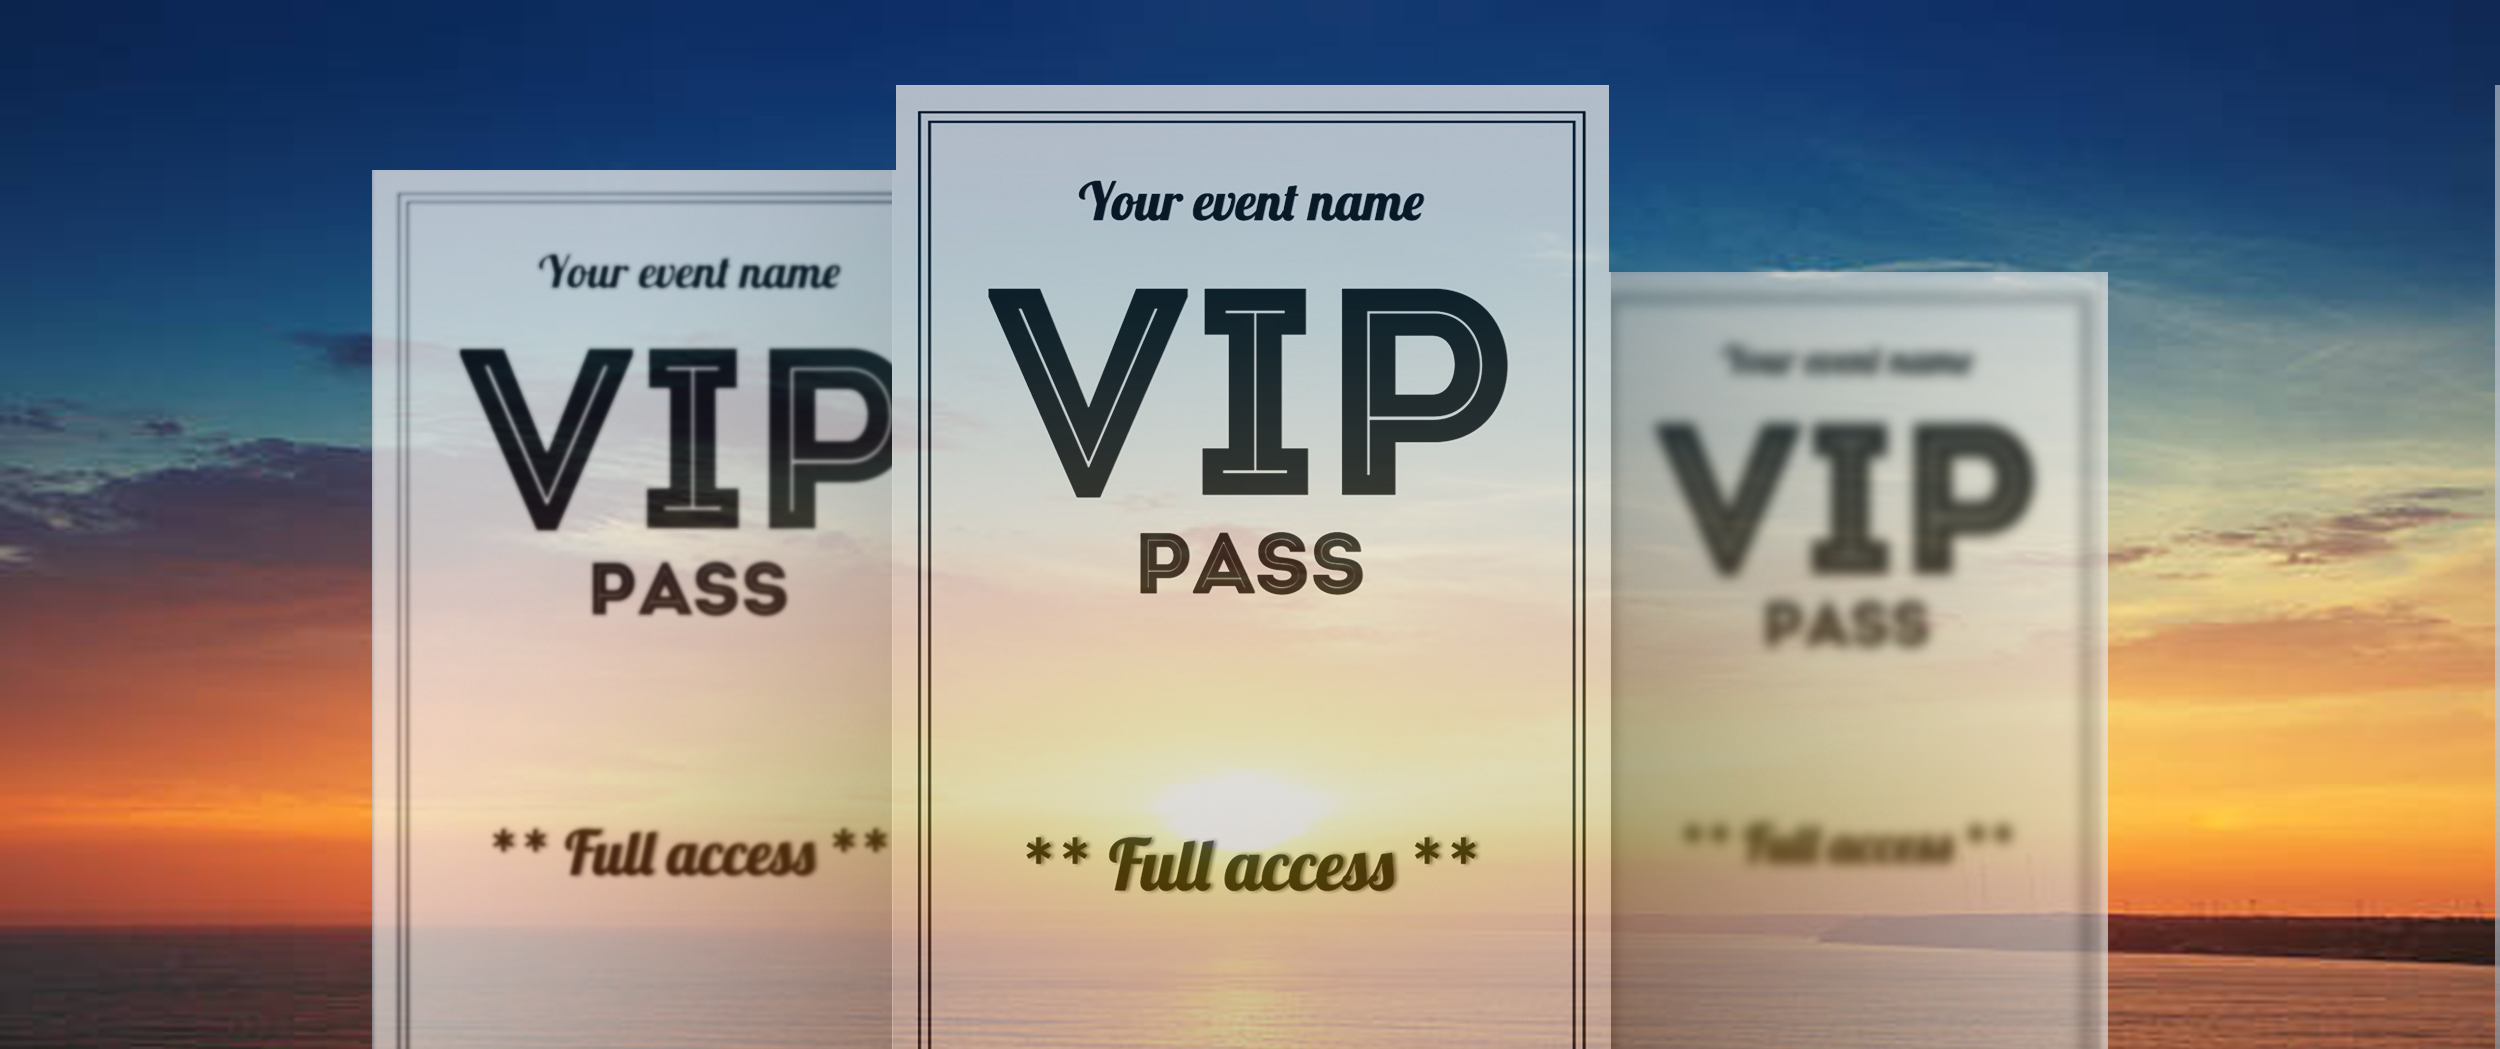 vip pass estate vip pass youparti special event open bar milano rooftop esclusive event